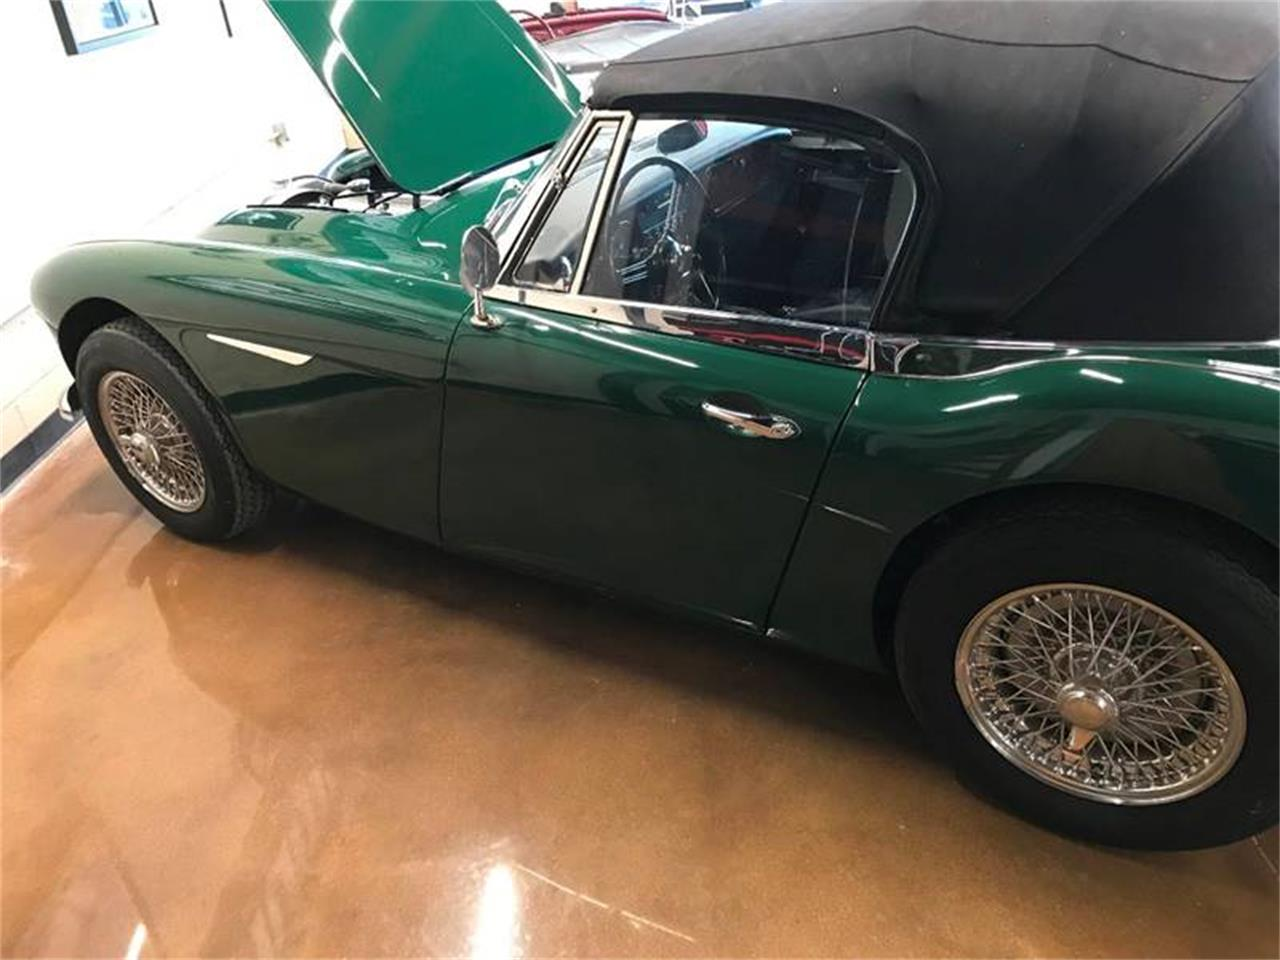 1967 Austin-Healey 3000 Mark III BJ8 for sale in St Louis, MO – photo 11